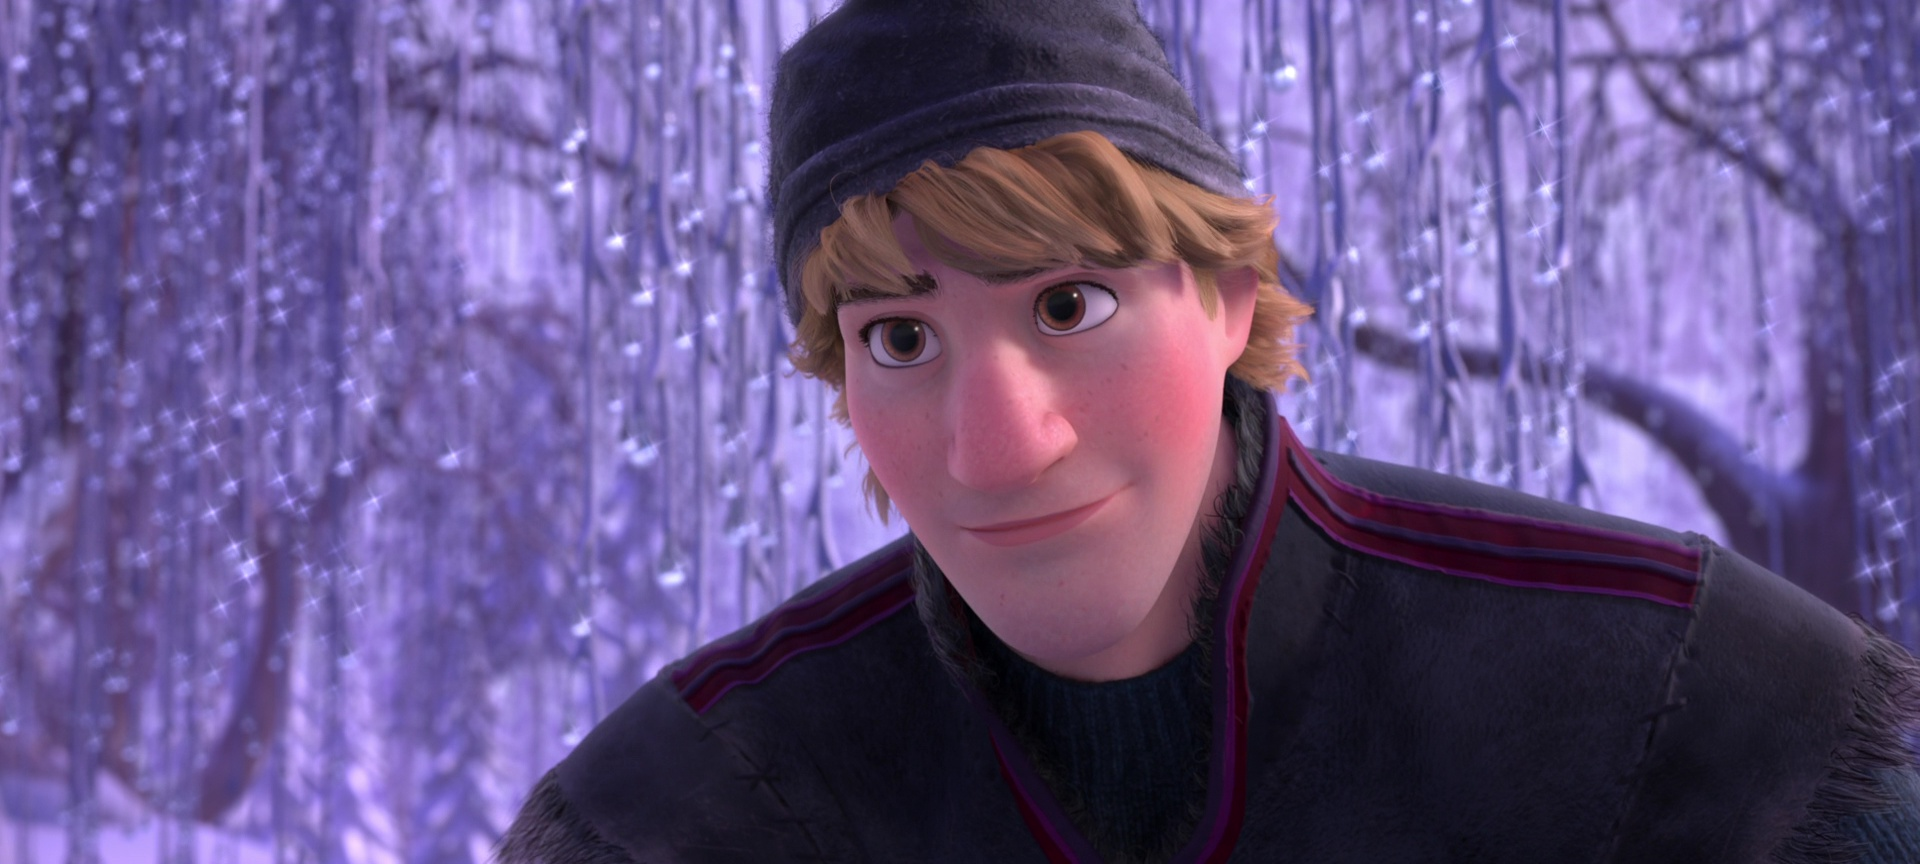 kristoff personnage character disney animation reine neiges frozen - Disney La Reine Des Neiges